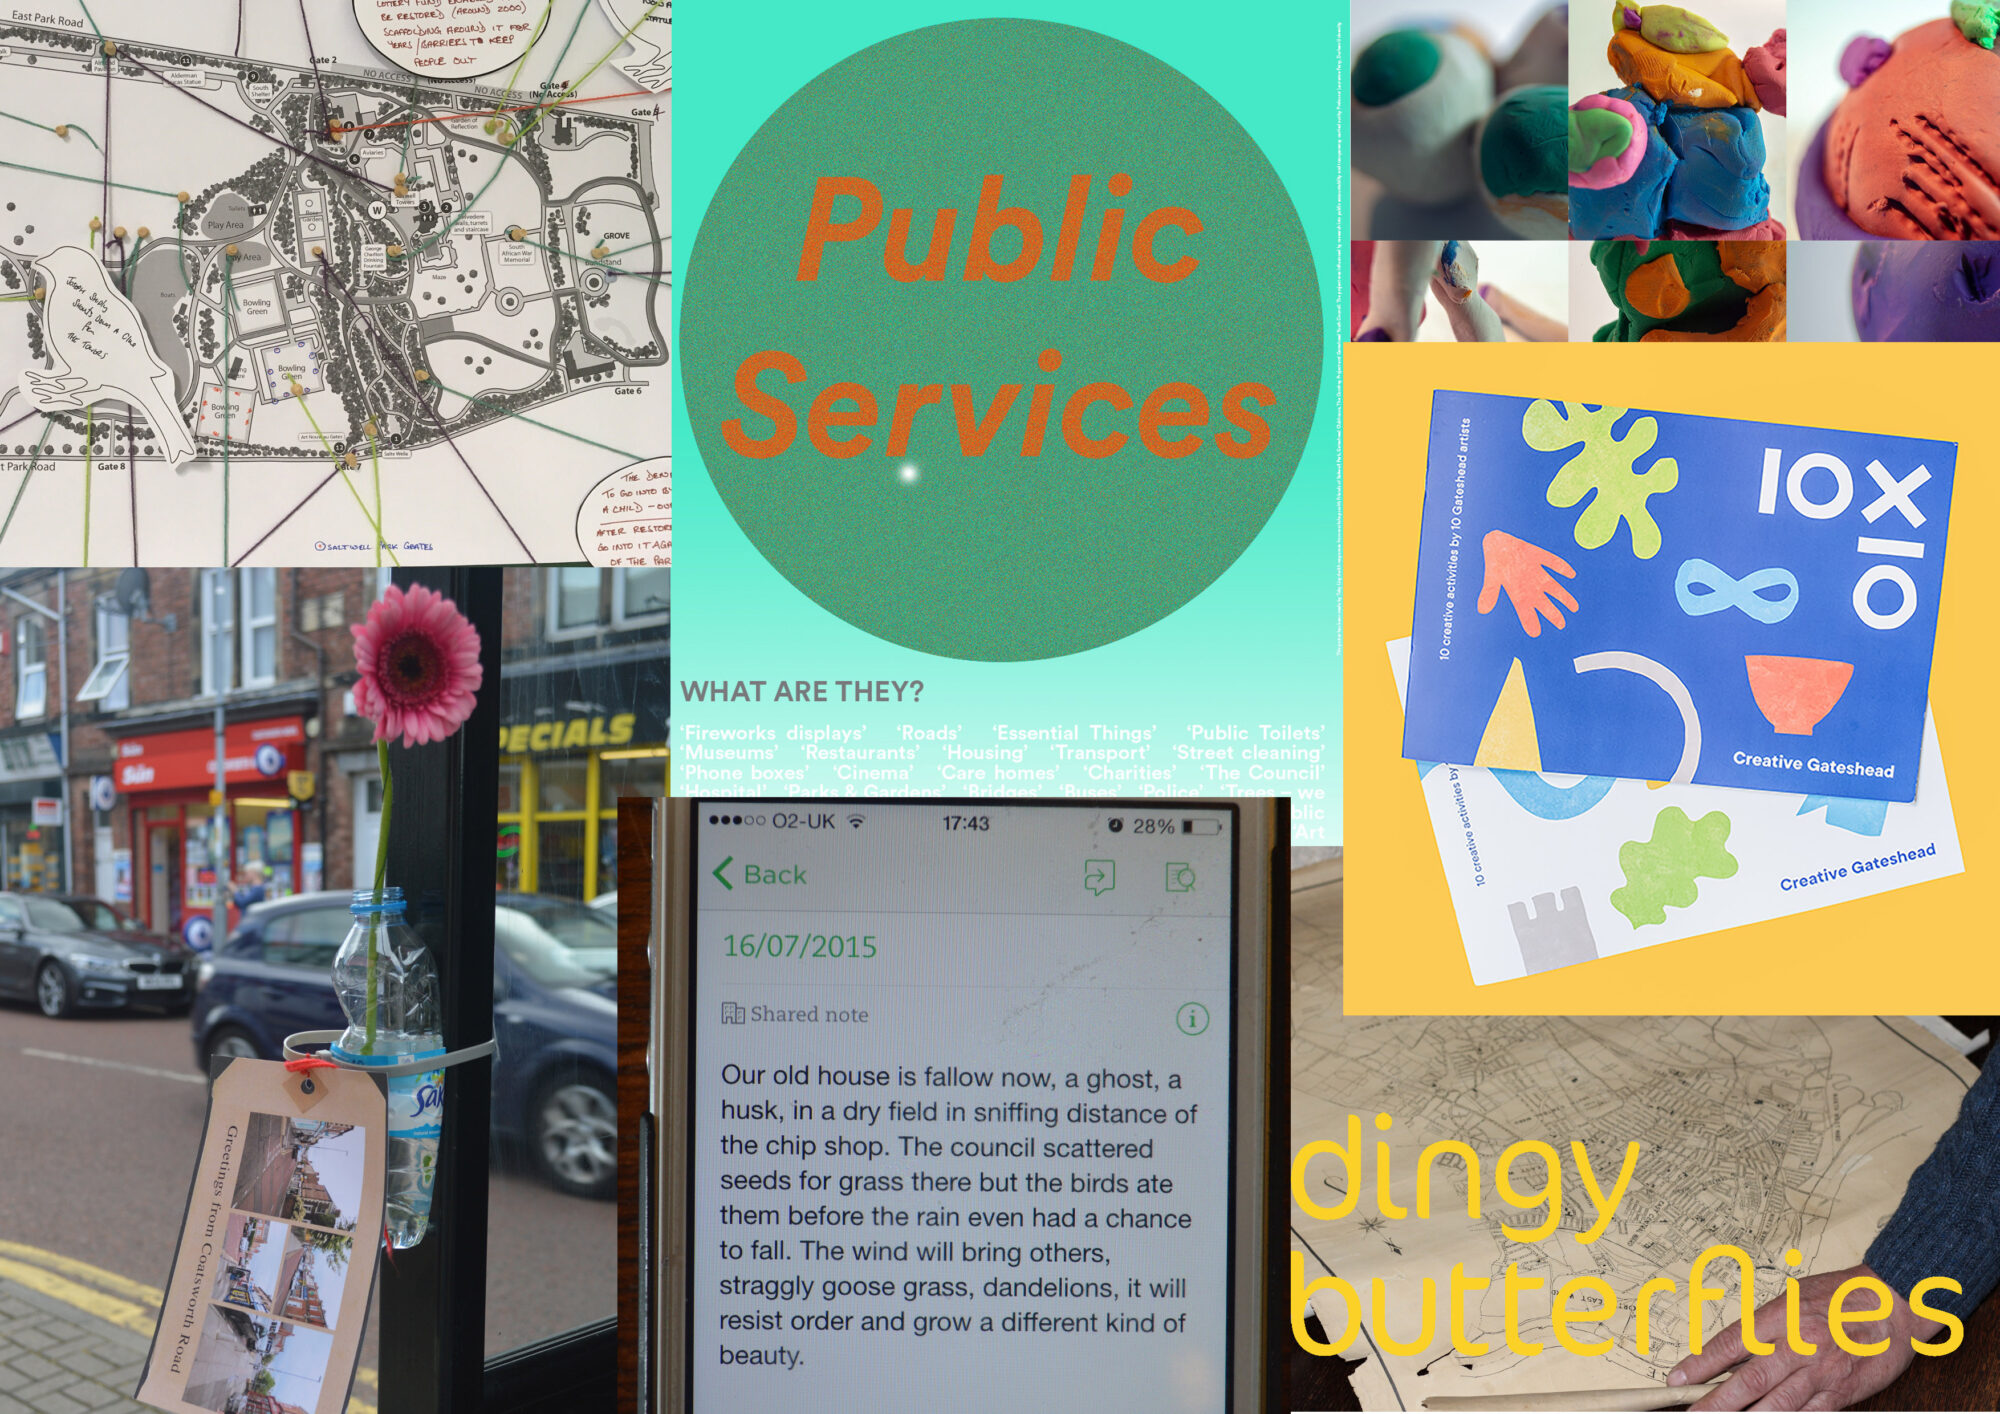 A few different images. A map, some colourful clay artworks. The 10x10 Creative Gateshead Booklets. The 'Dingy Butterflies'. A note on a phone. A water bottle with a flower in cable tied to a lampost with a note with some street photos attached. A poster for 'Public Services'